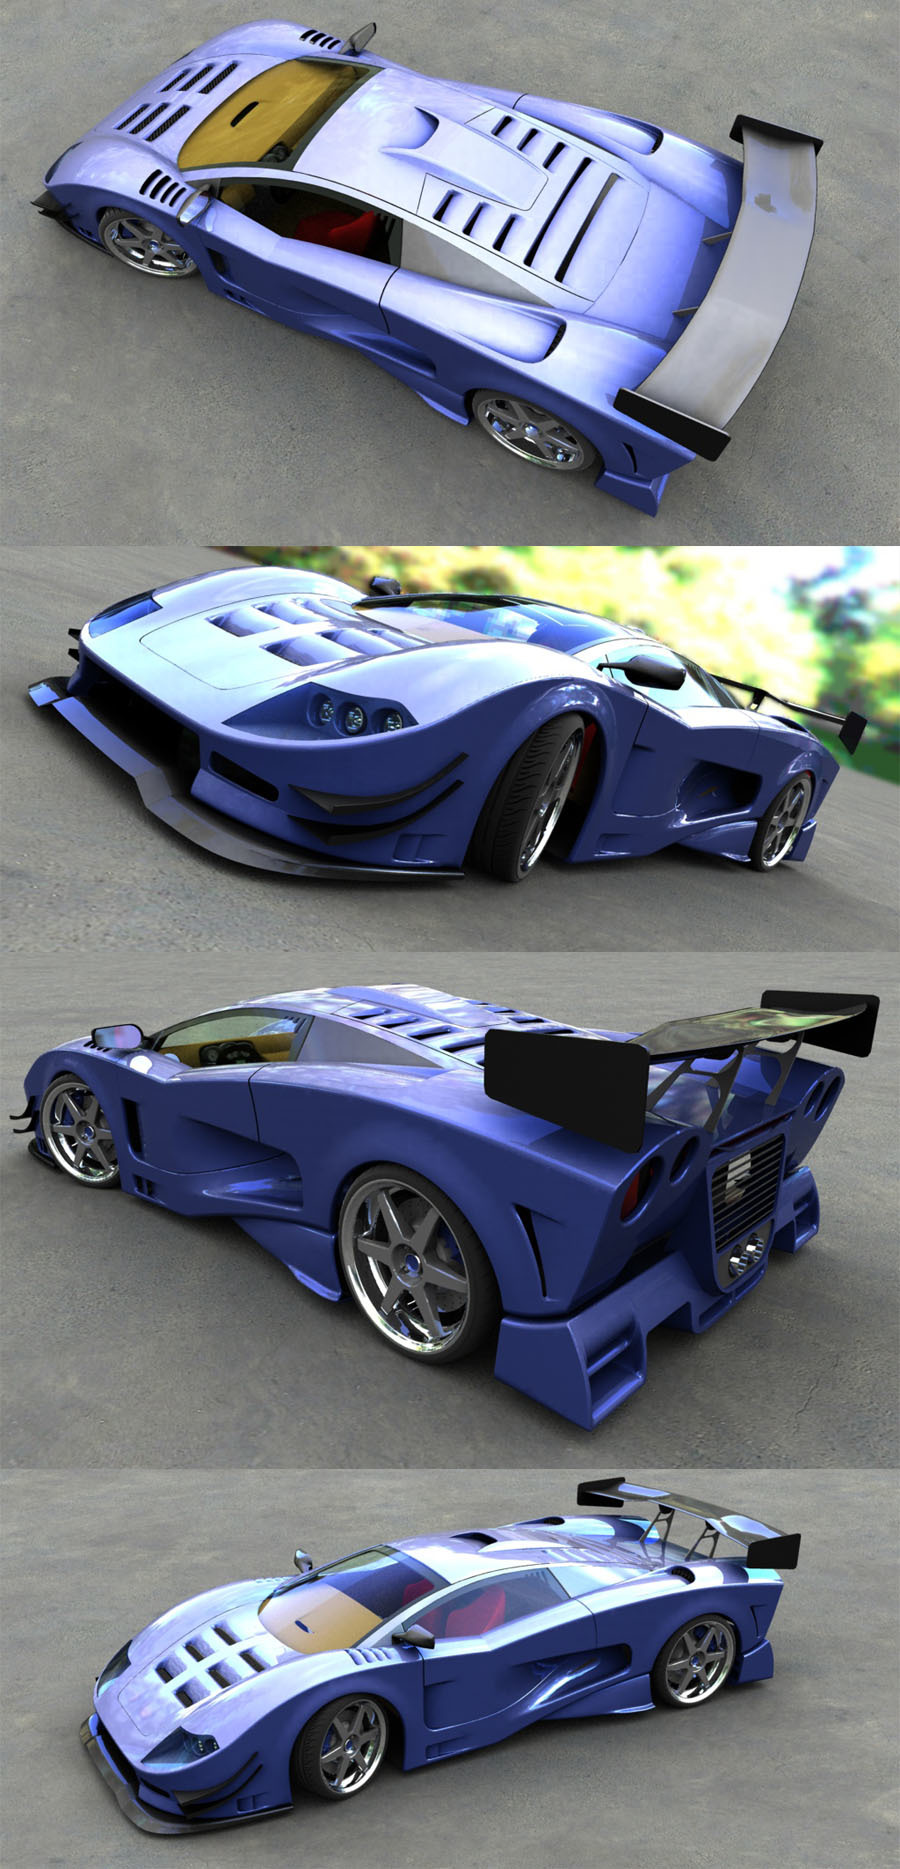 gts conceptcar finished,.... by sabaman